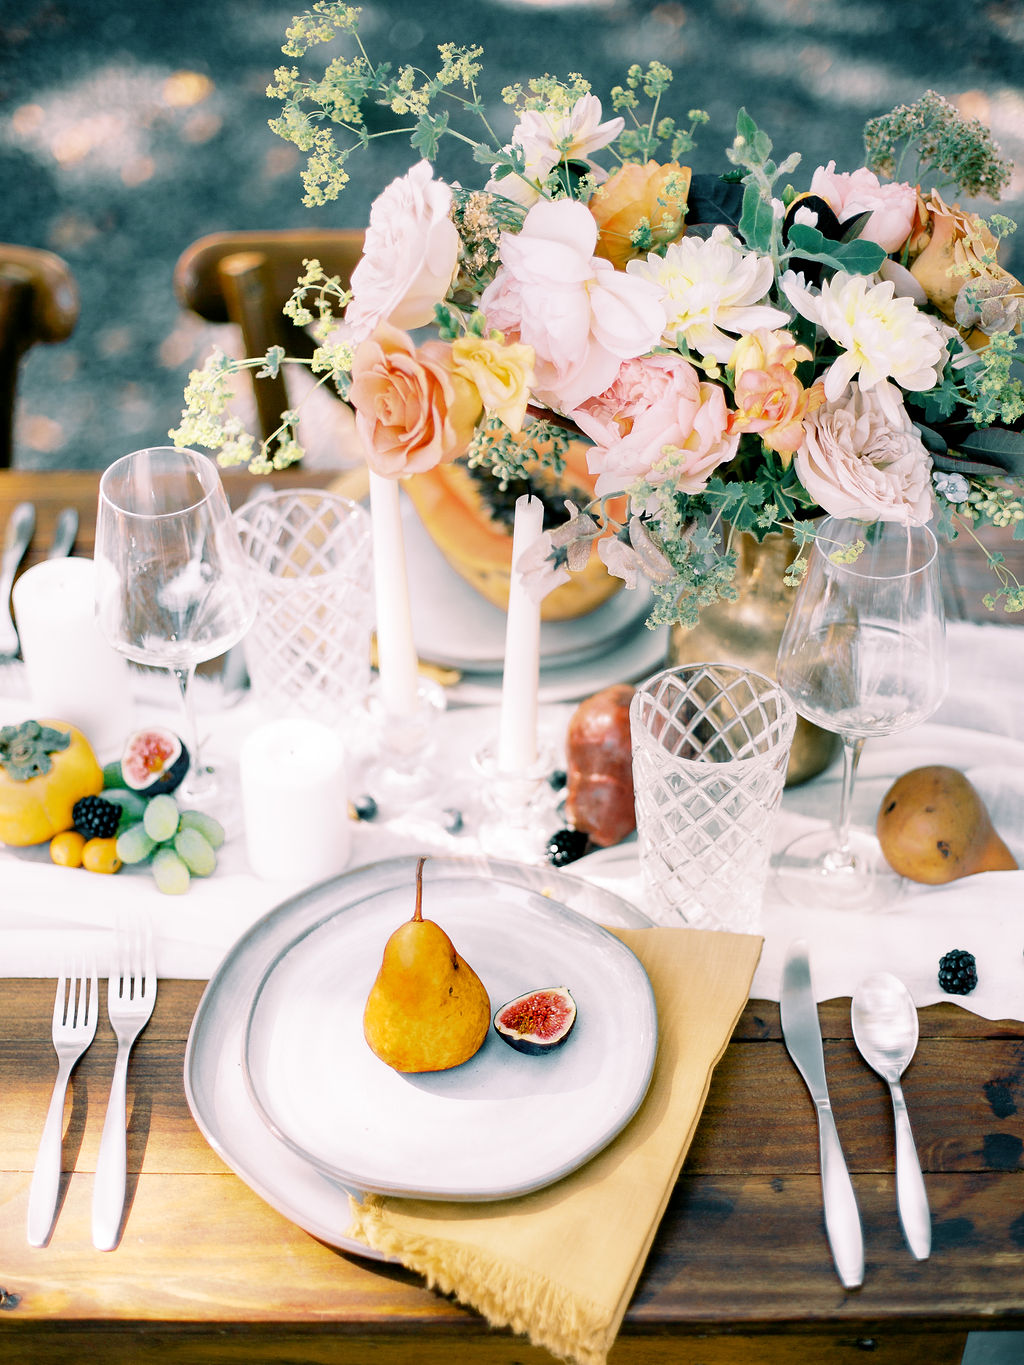 Fruit wedding place setting: Ethereal Wedding Inspiration at The White Sparrow